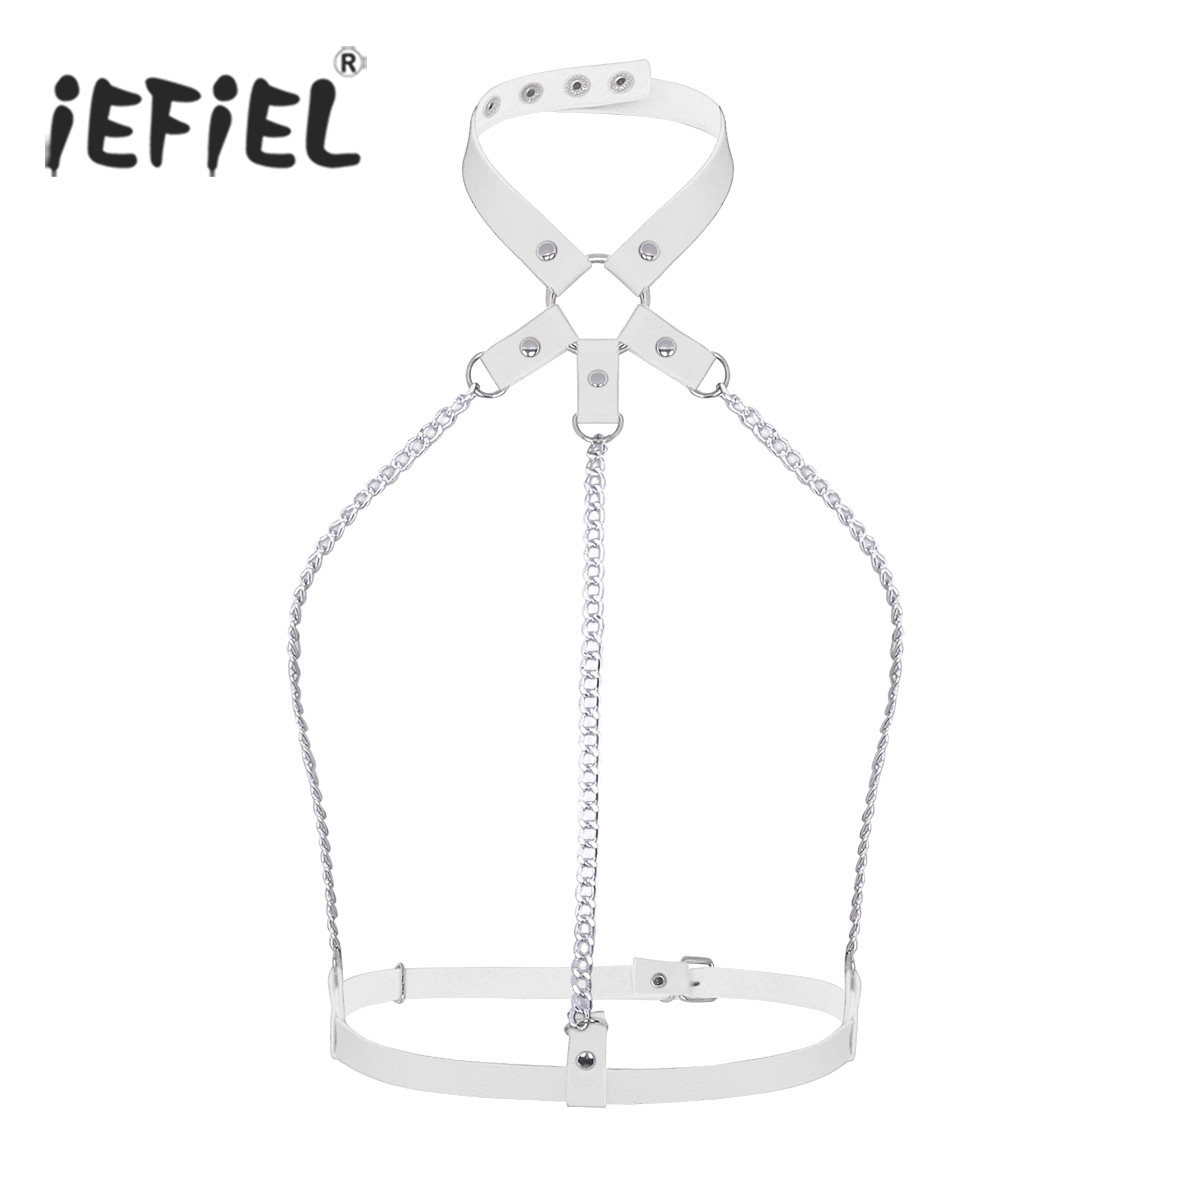 Women Punk Fashion Cosplay Evening Party Belts Halter Neck Adjustable Body Half Harness Belt with Festival   Metal Chain Tassels